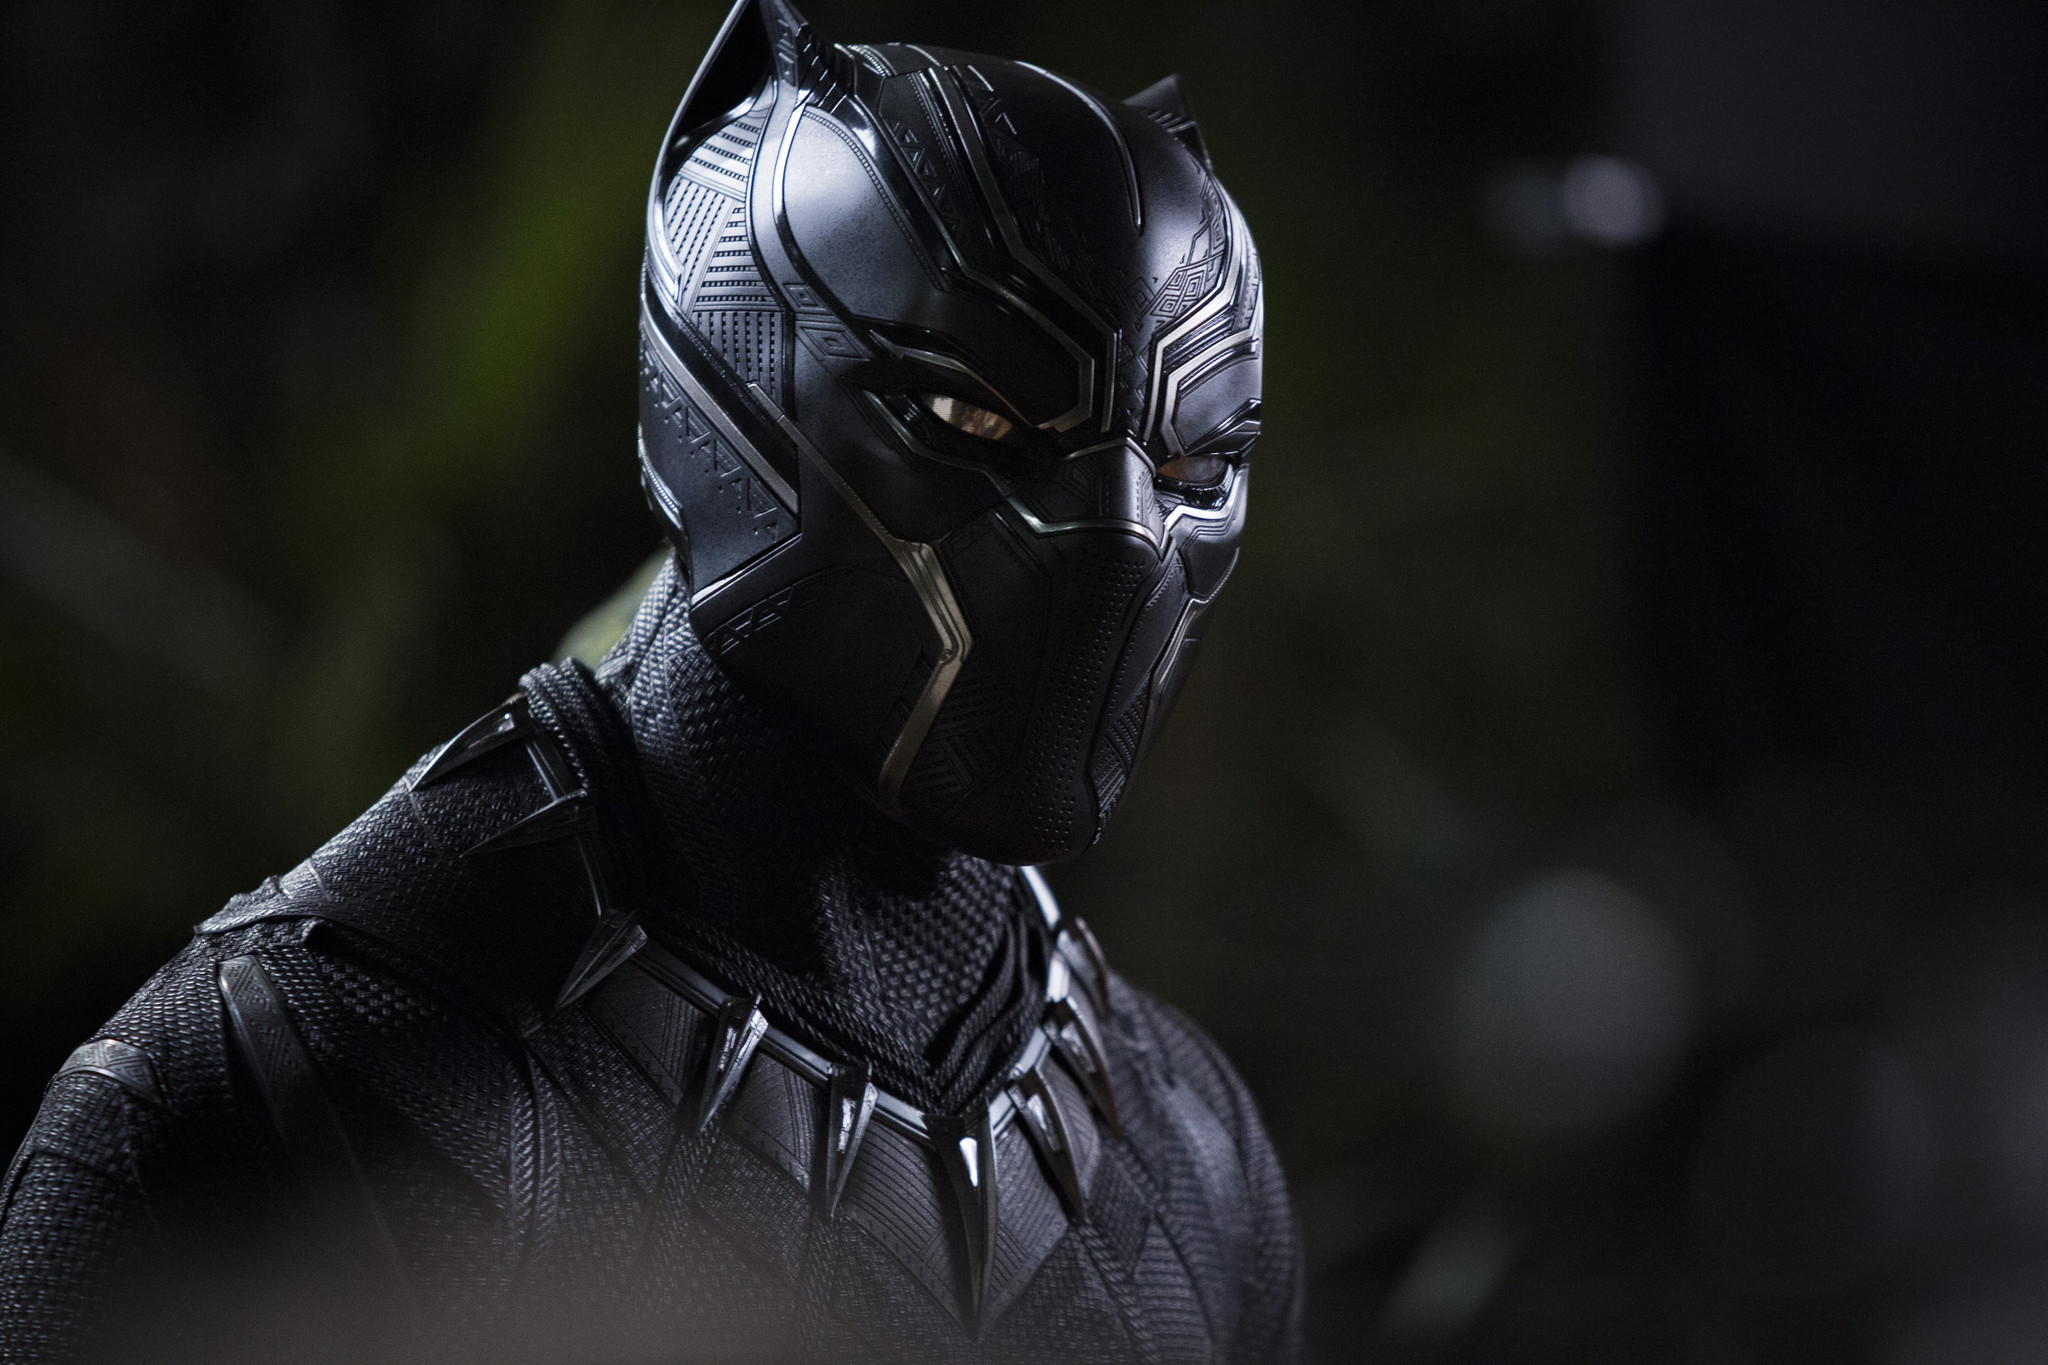 """T'Challa/Black Panther (Chadwick Boseman)in a scene from Marvel's """"Black Panther."""" Credit: Matt Ken"""